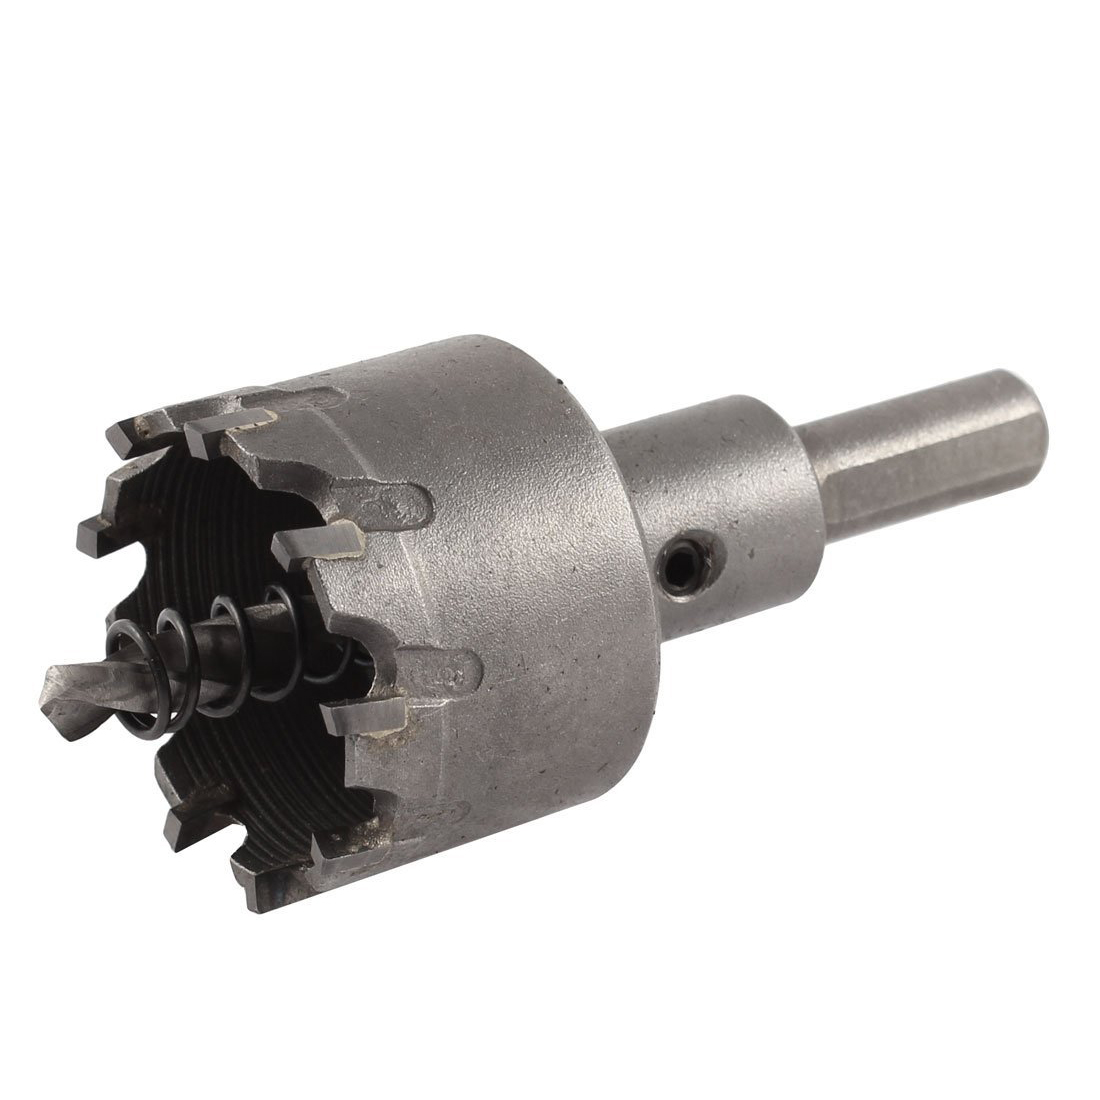 Подробнее о Hot salee Shank 6mm Twist Drill Bit 38mm Dia Stainless Steel Hole Saw Cutter uxcell 6mm twist drill bit 21mm cutting dia stainless steel plate hole saw cutter